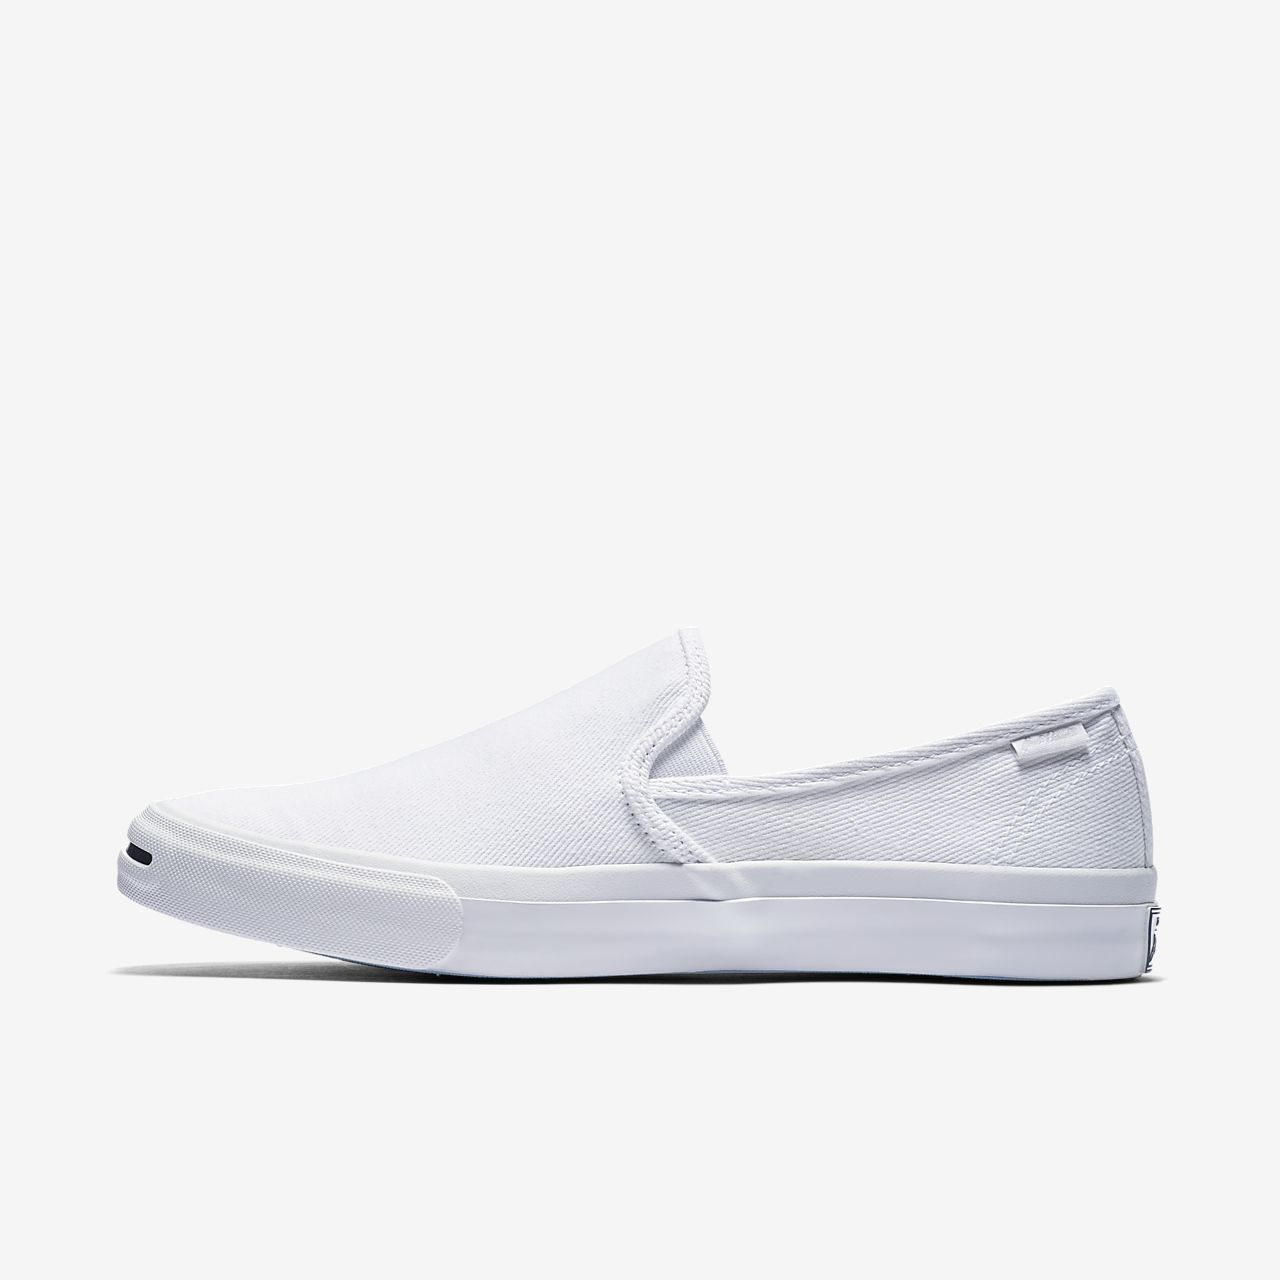 Converse Jack Purcell Perfil Bajo Slip-on dvM8M